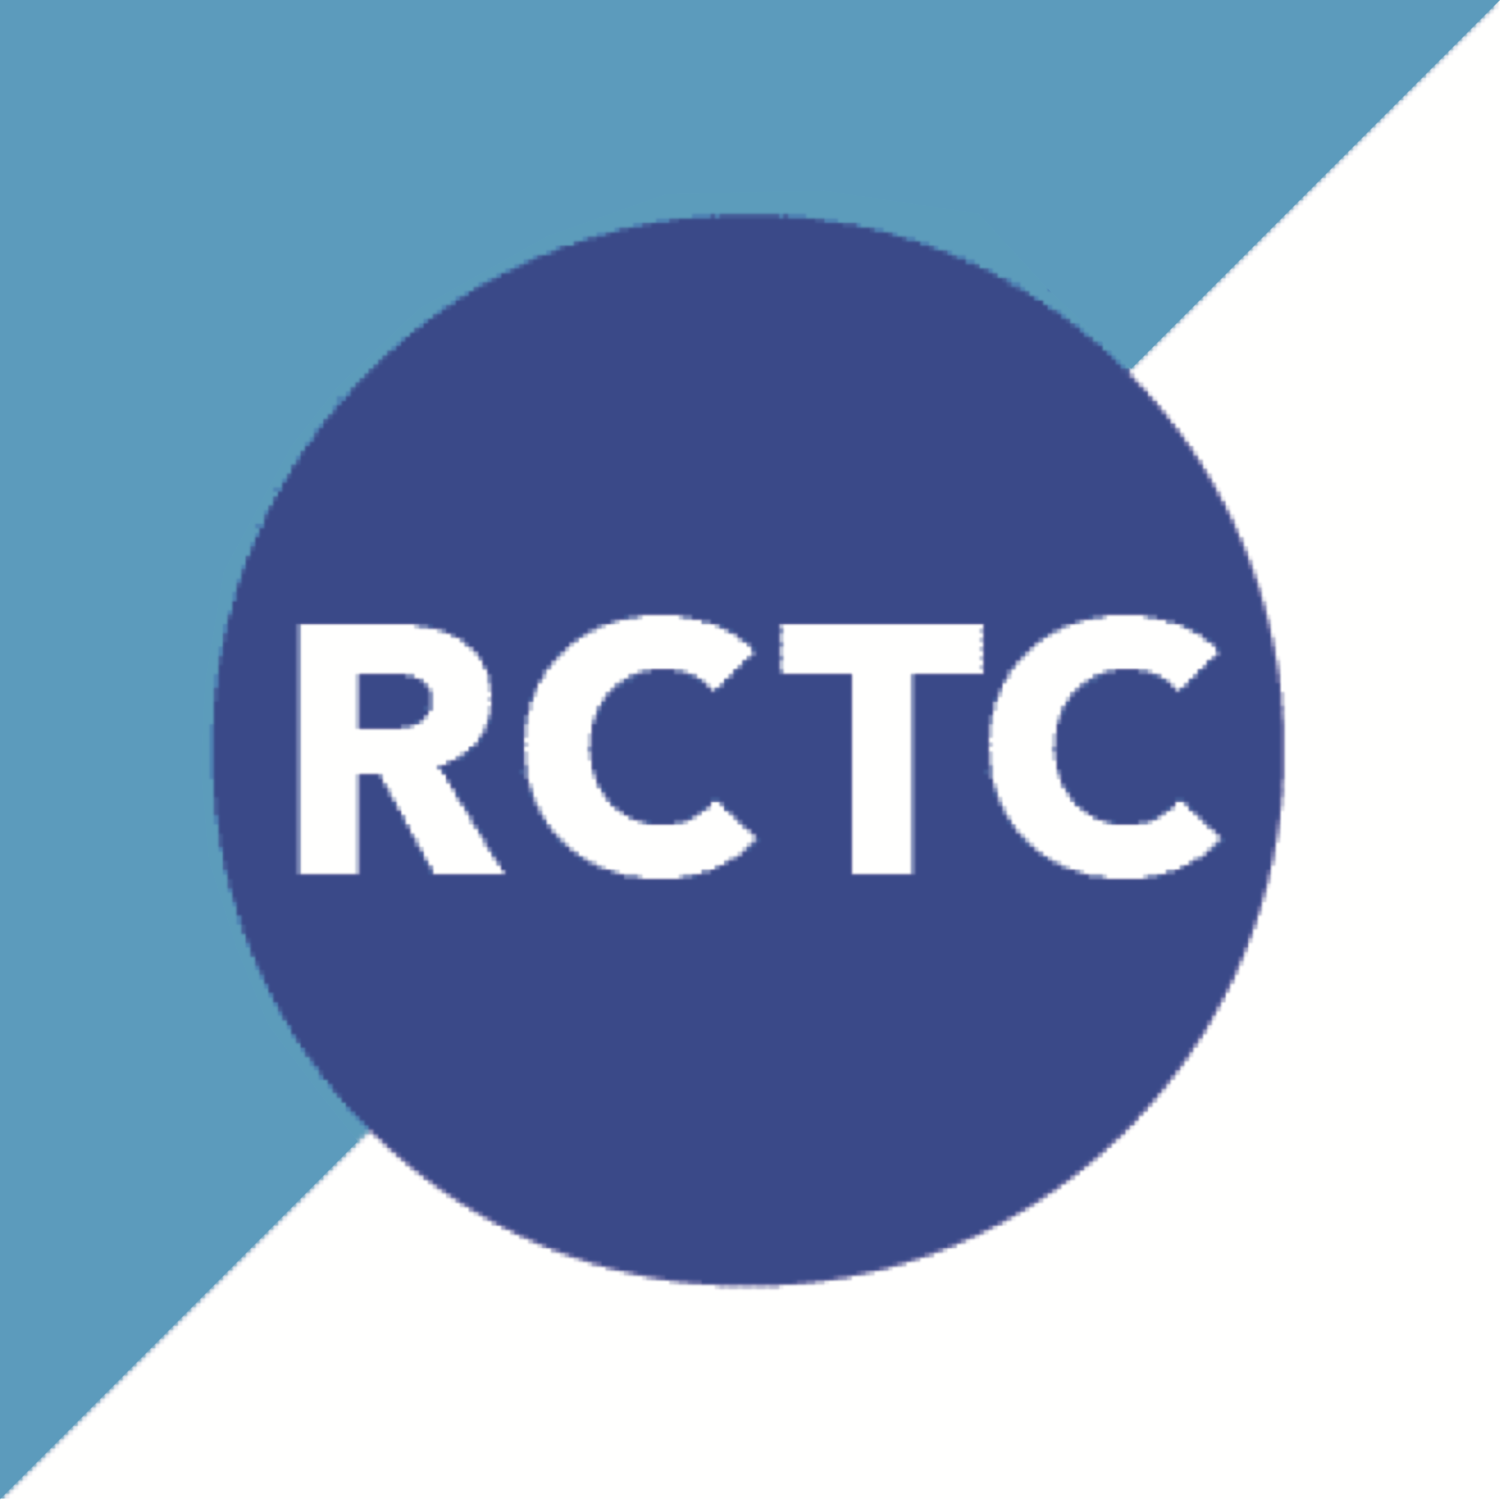 RCTC - Stay Connected